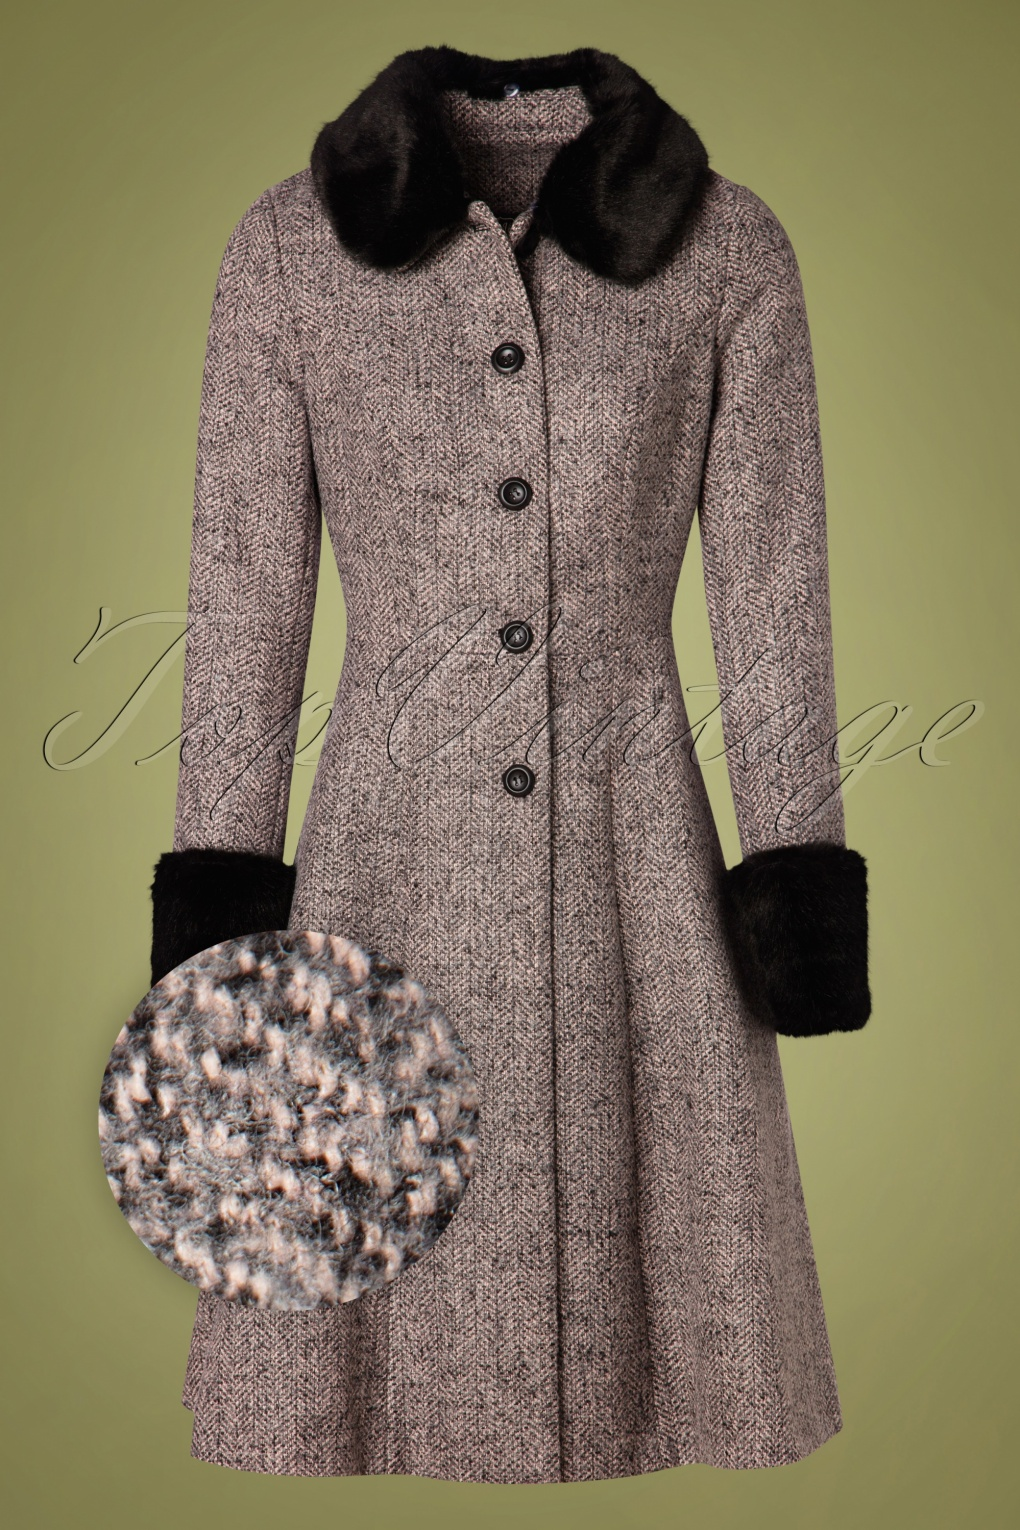 1950s Jackets, Coats, Bolero | Swing, Pin Up, Rockabilly 50s Louisa May Coat in Stone £113.60 AT vintagedancer.com